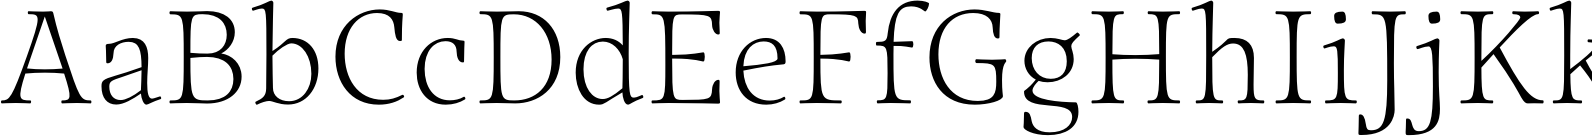 Traction Ultralight Font